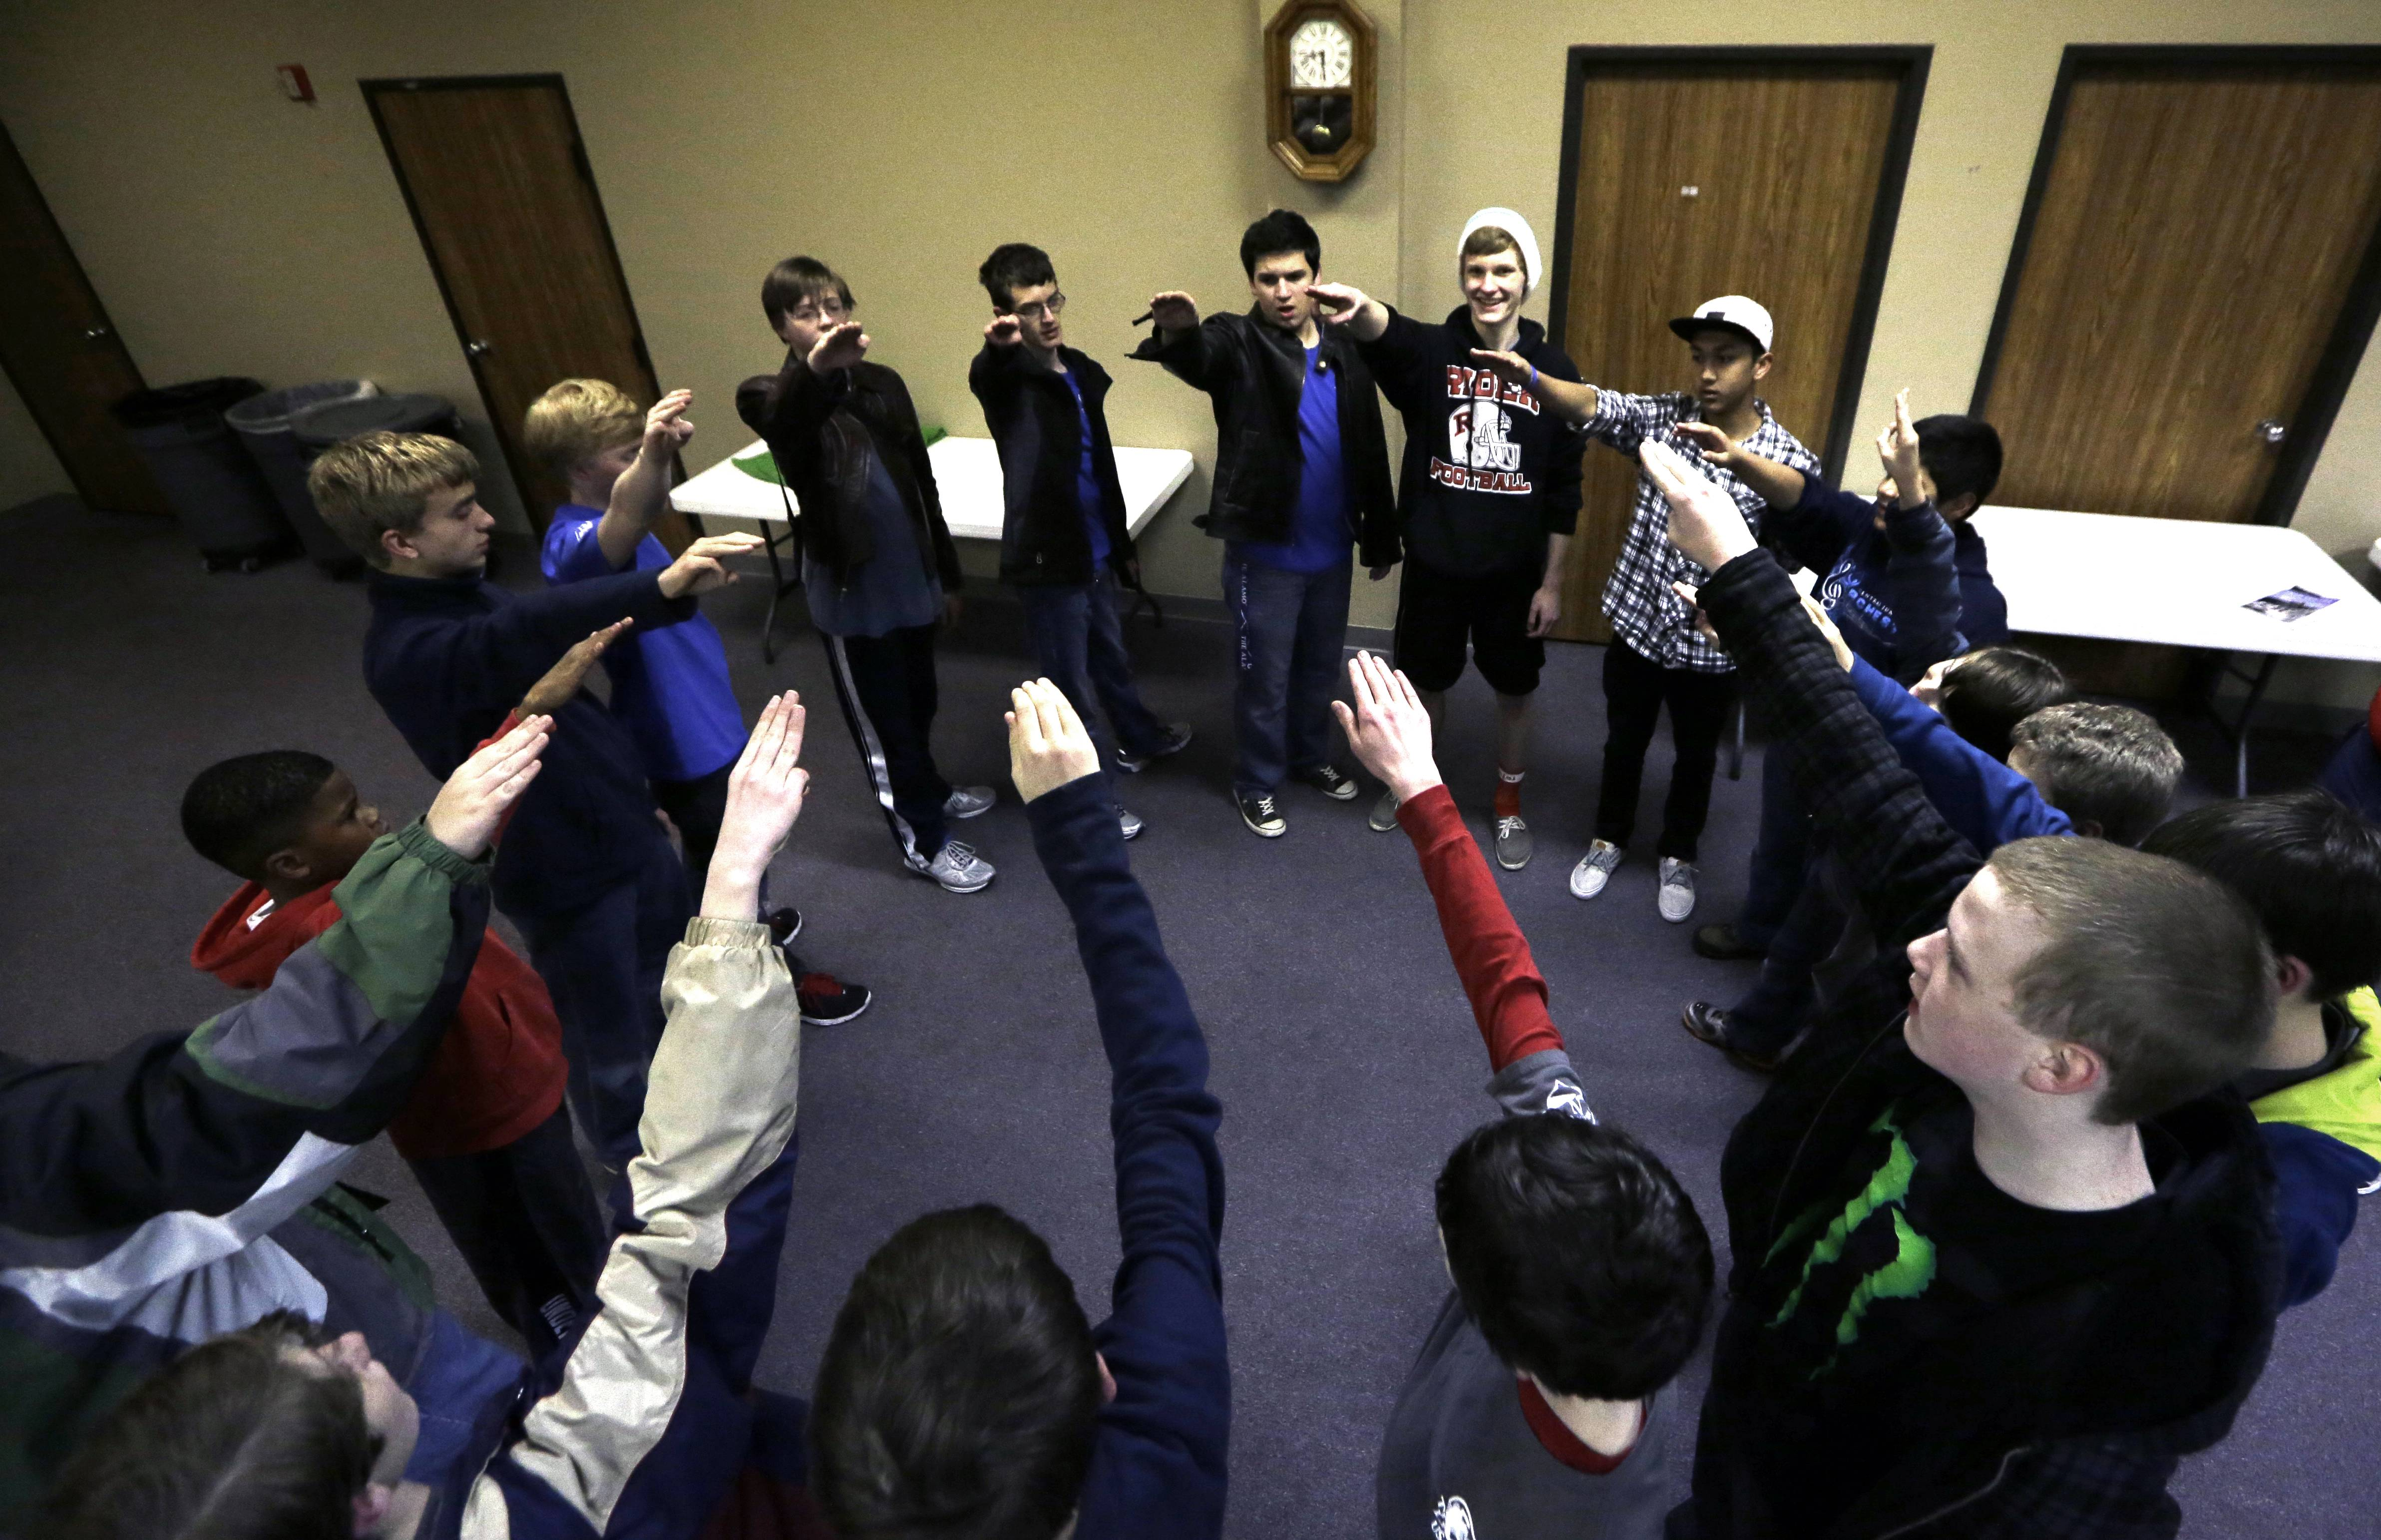 In this Tuesday, Feb. 4, 2014 photo, Trail Life members form a circle and recite the organization's creed during meeting in North Richland Hills, Texas. Trail Life USA, the new Christian-based alternative to the Boy Scouts of America, excludes openly gay members.